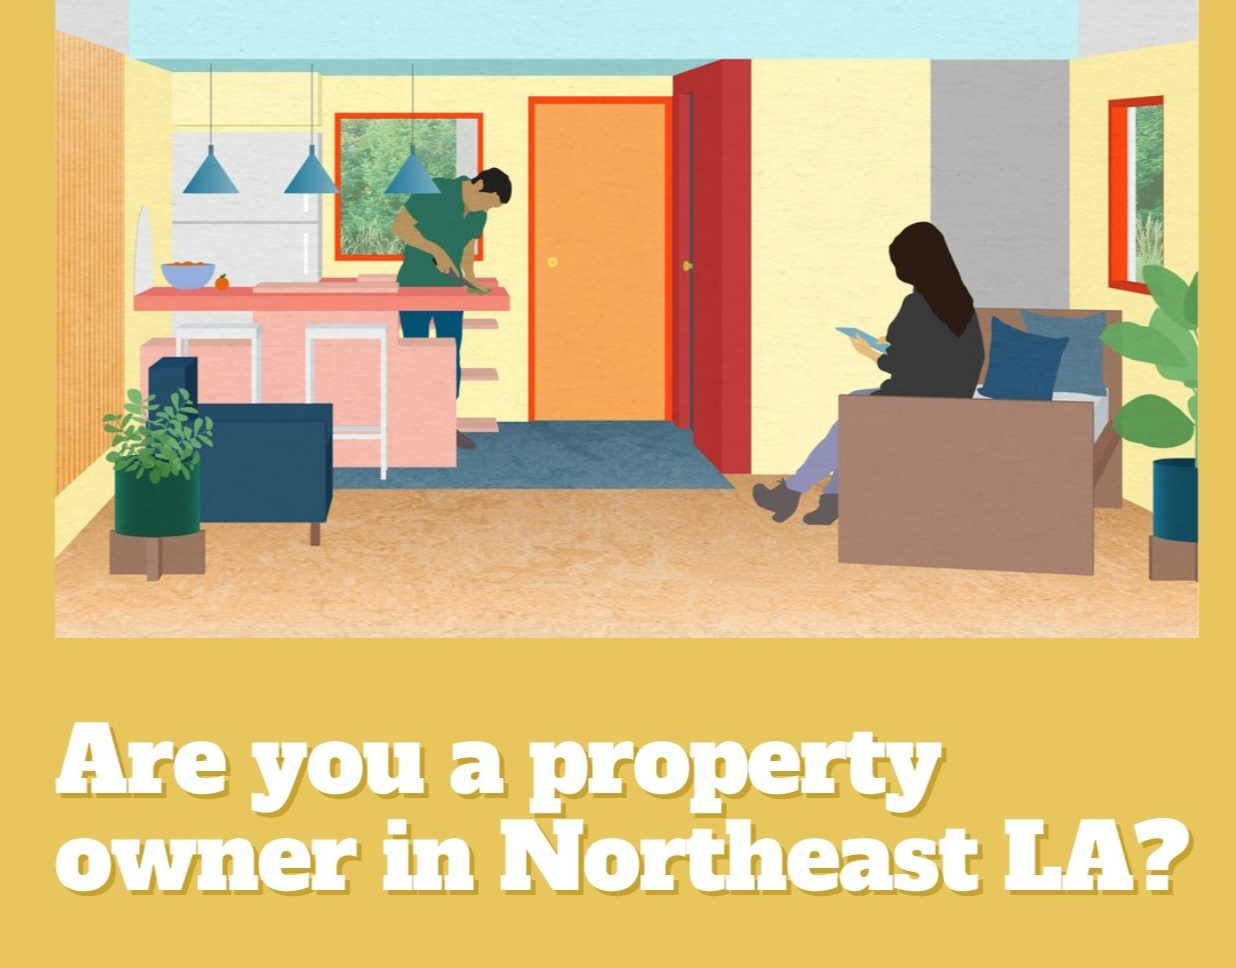 Are you a property owner in Northeast LA? image 1